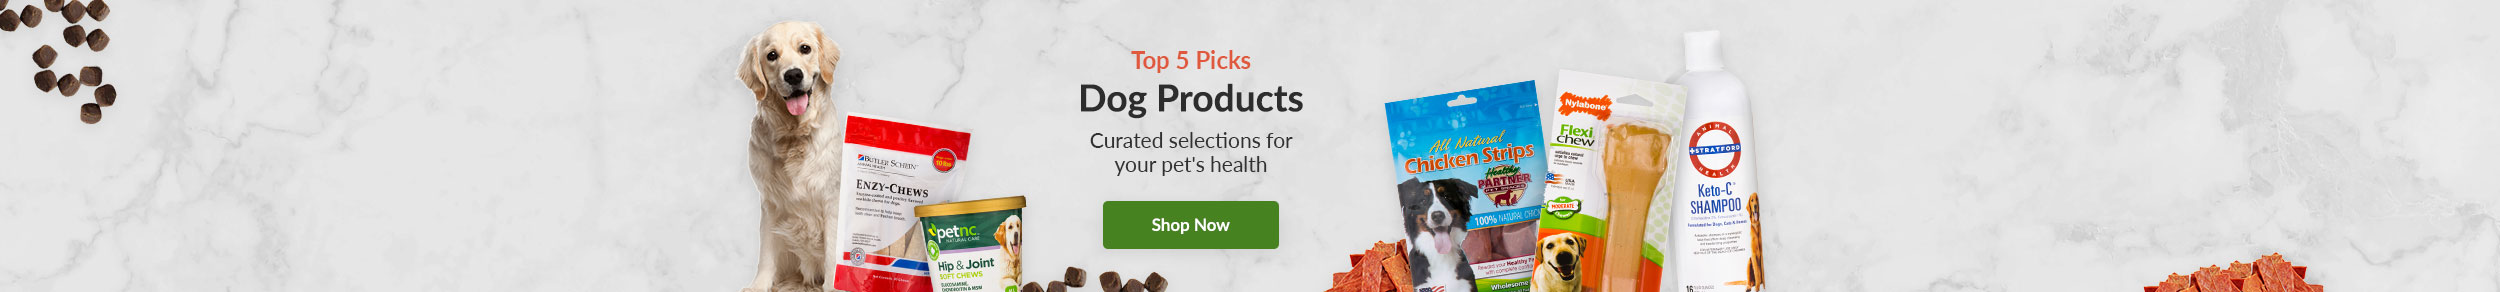 https://i3.pureformulas.net/images/static/Top-5-Picks-for-Dogs_122818.jpg